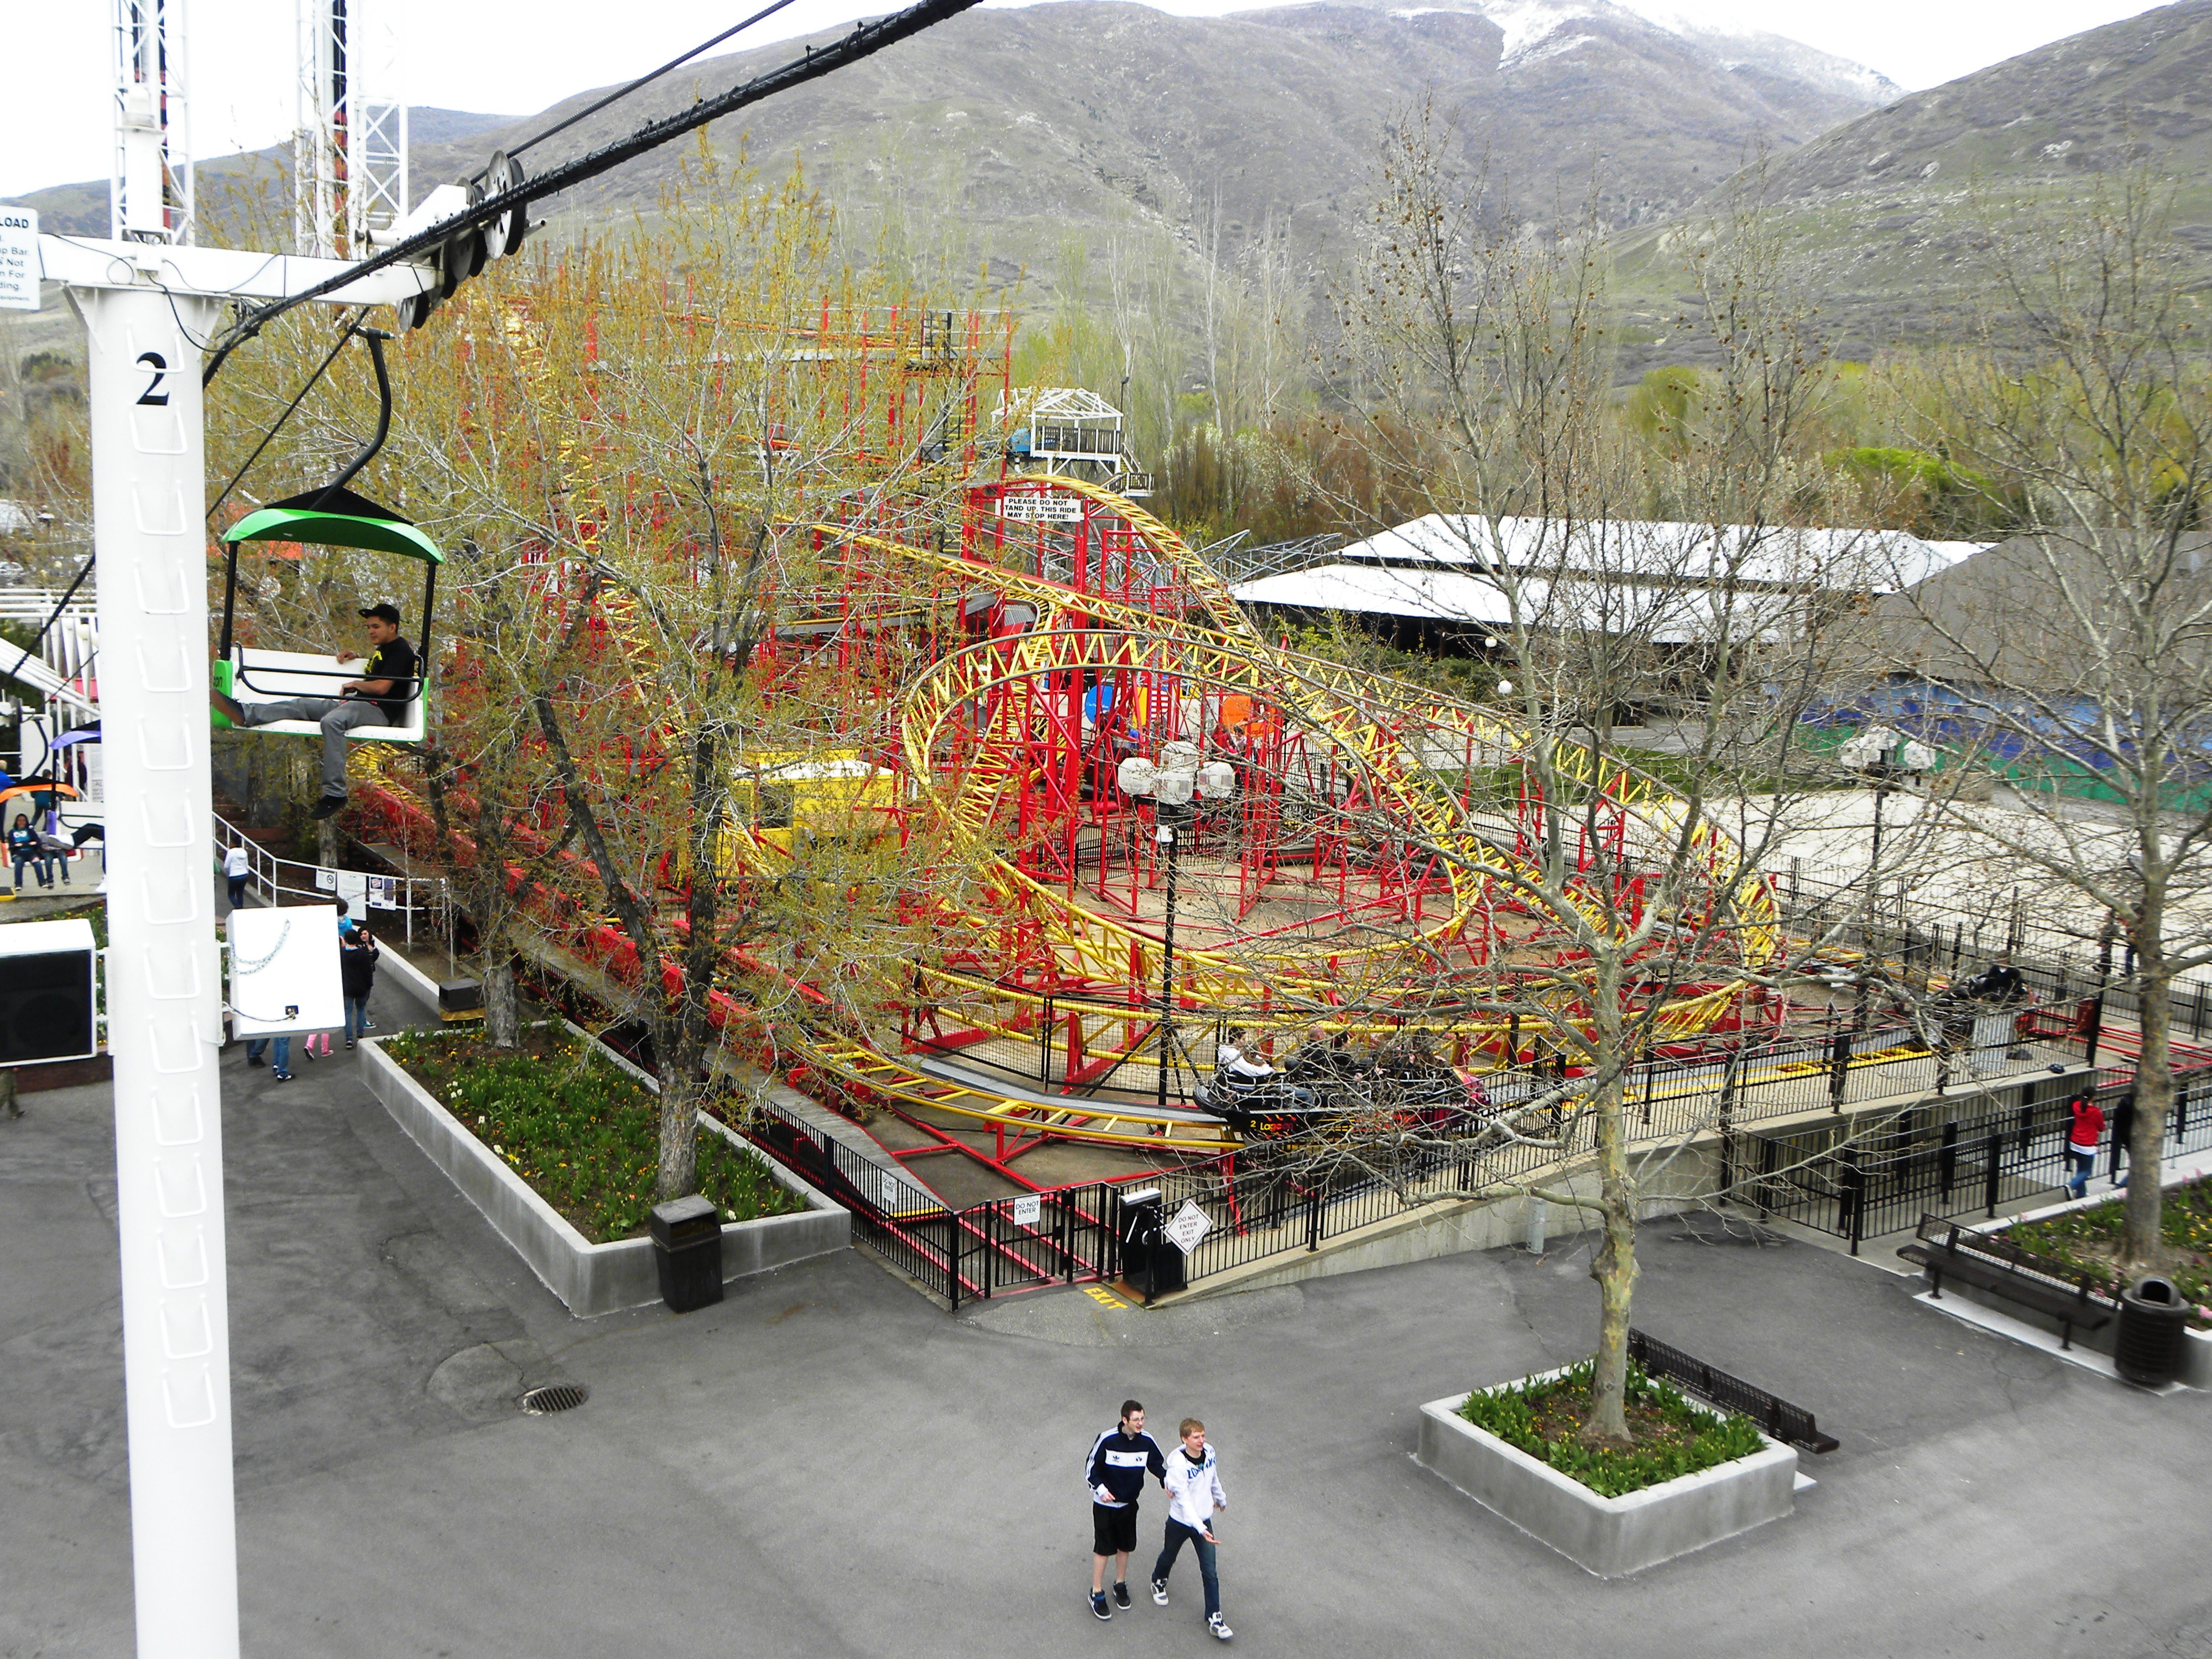 A-Z Coaster of the Week: Jet Star 2 - Coaster101